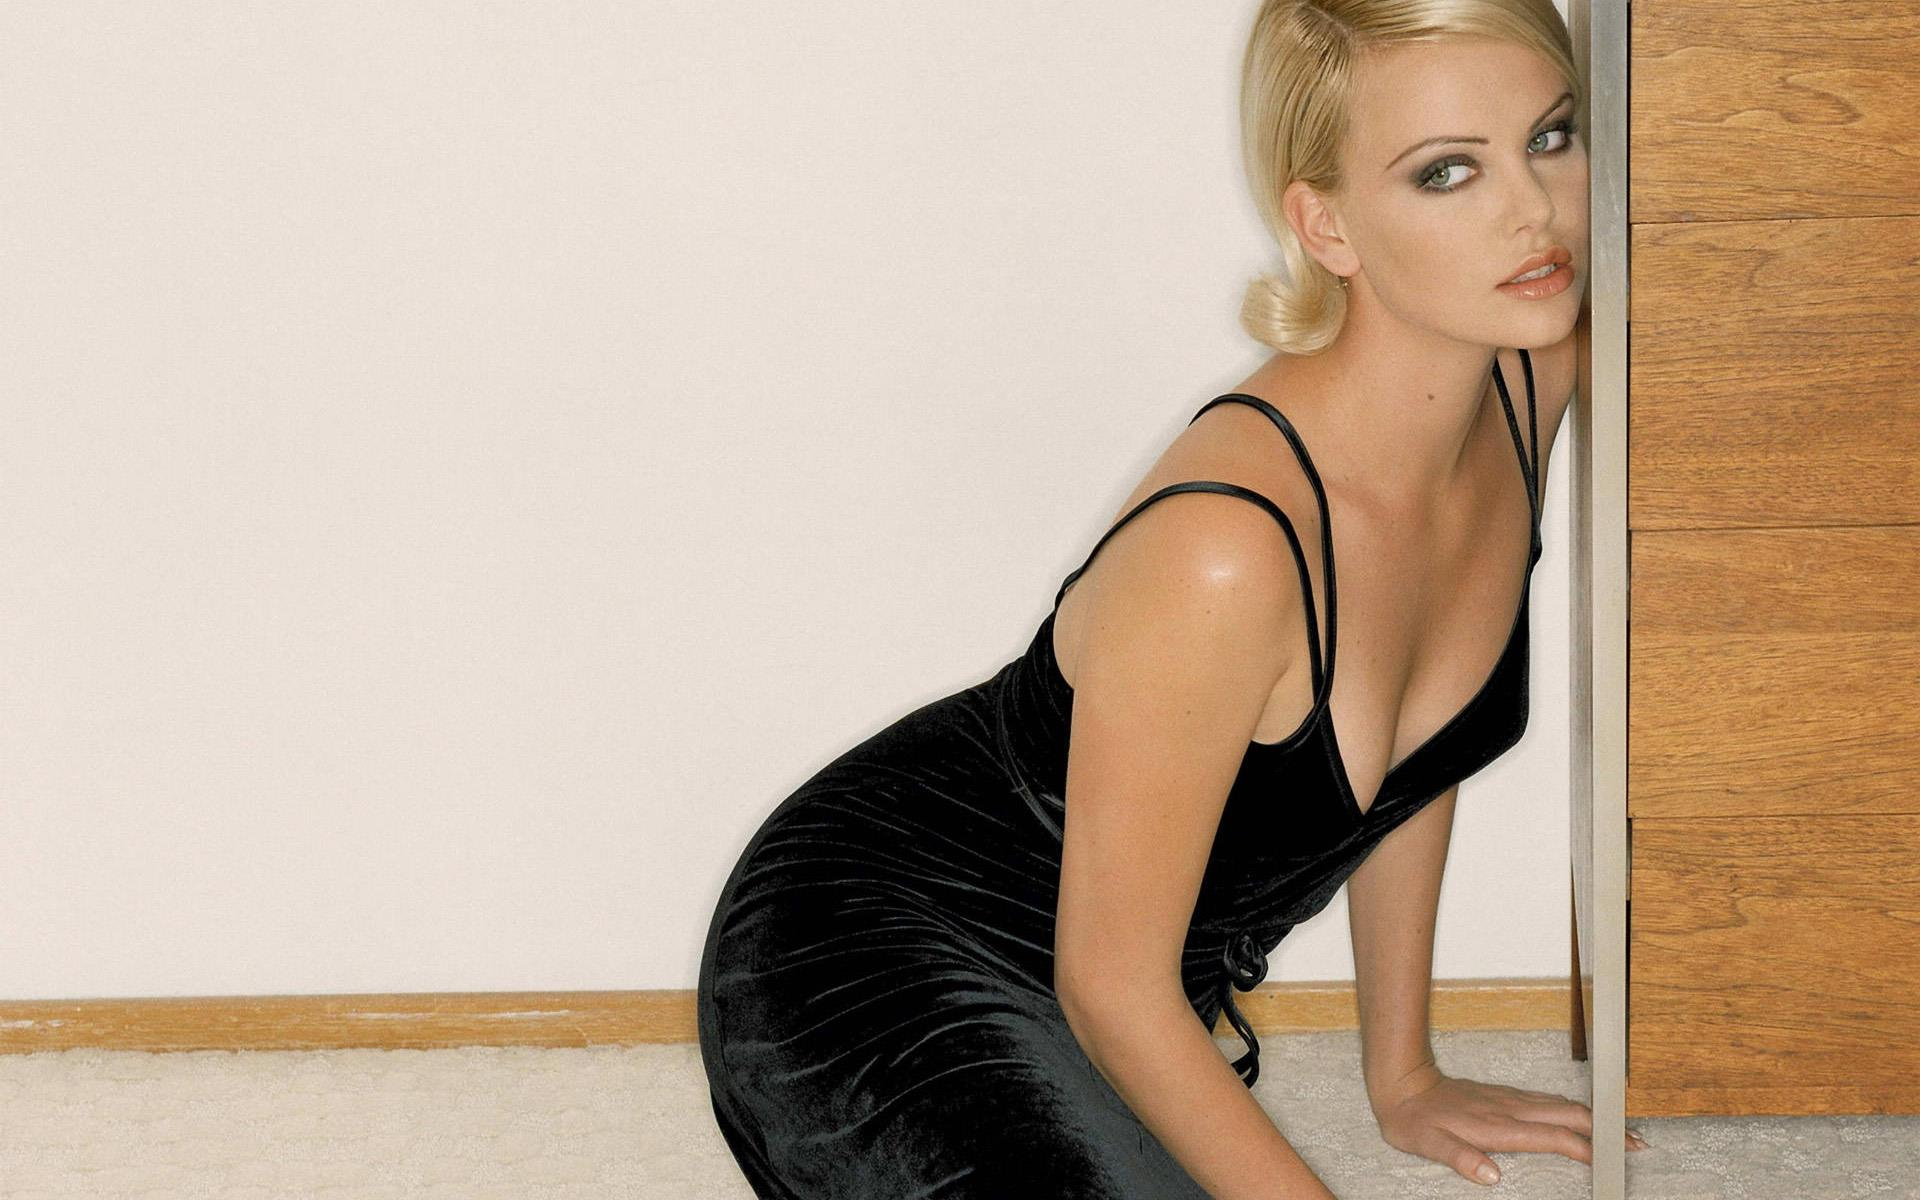 Cute Lady Wallpaper Hd Hot Charlize Theron Image